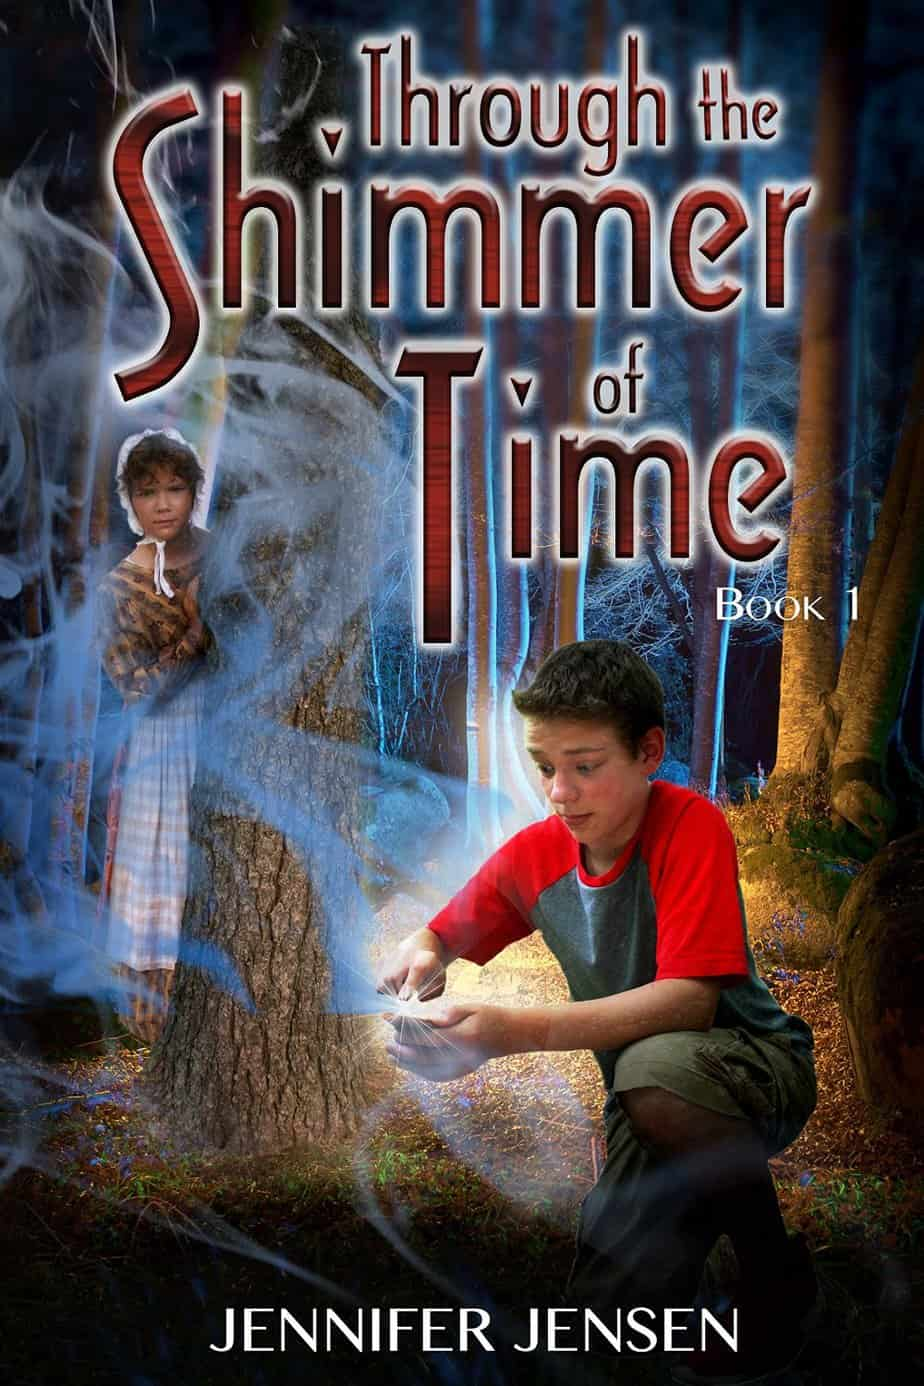 Through the Shimmer of Time by Jennifer Jensen